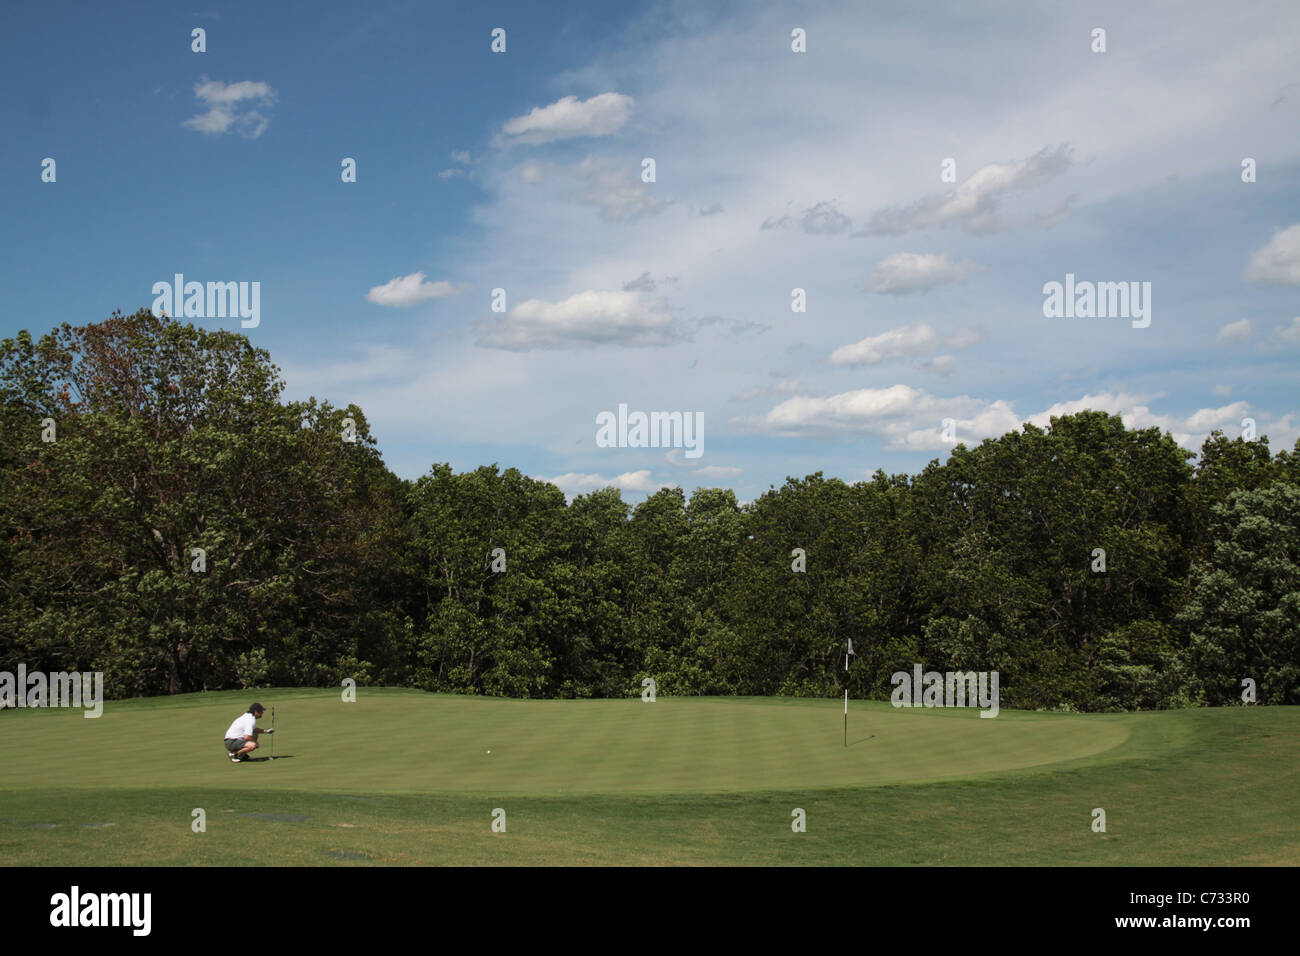 A man on a golf green preparing to putt. - Stock Image